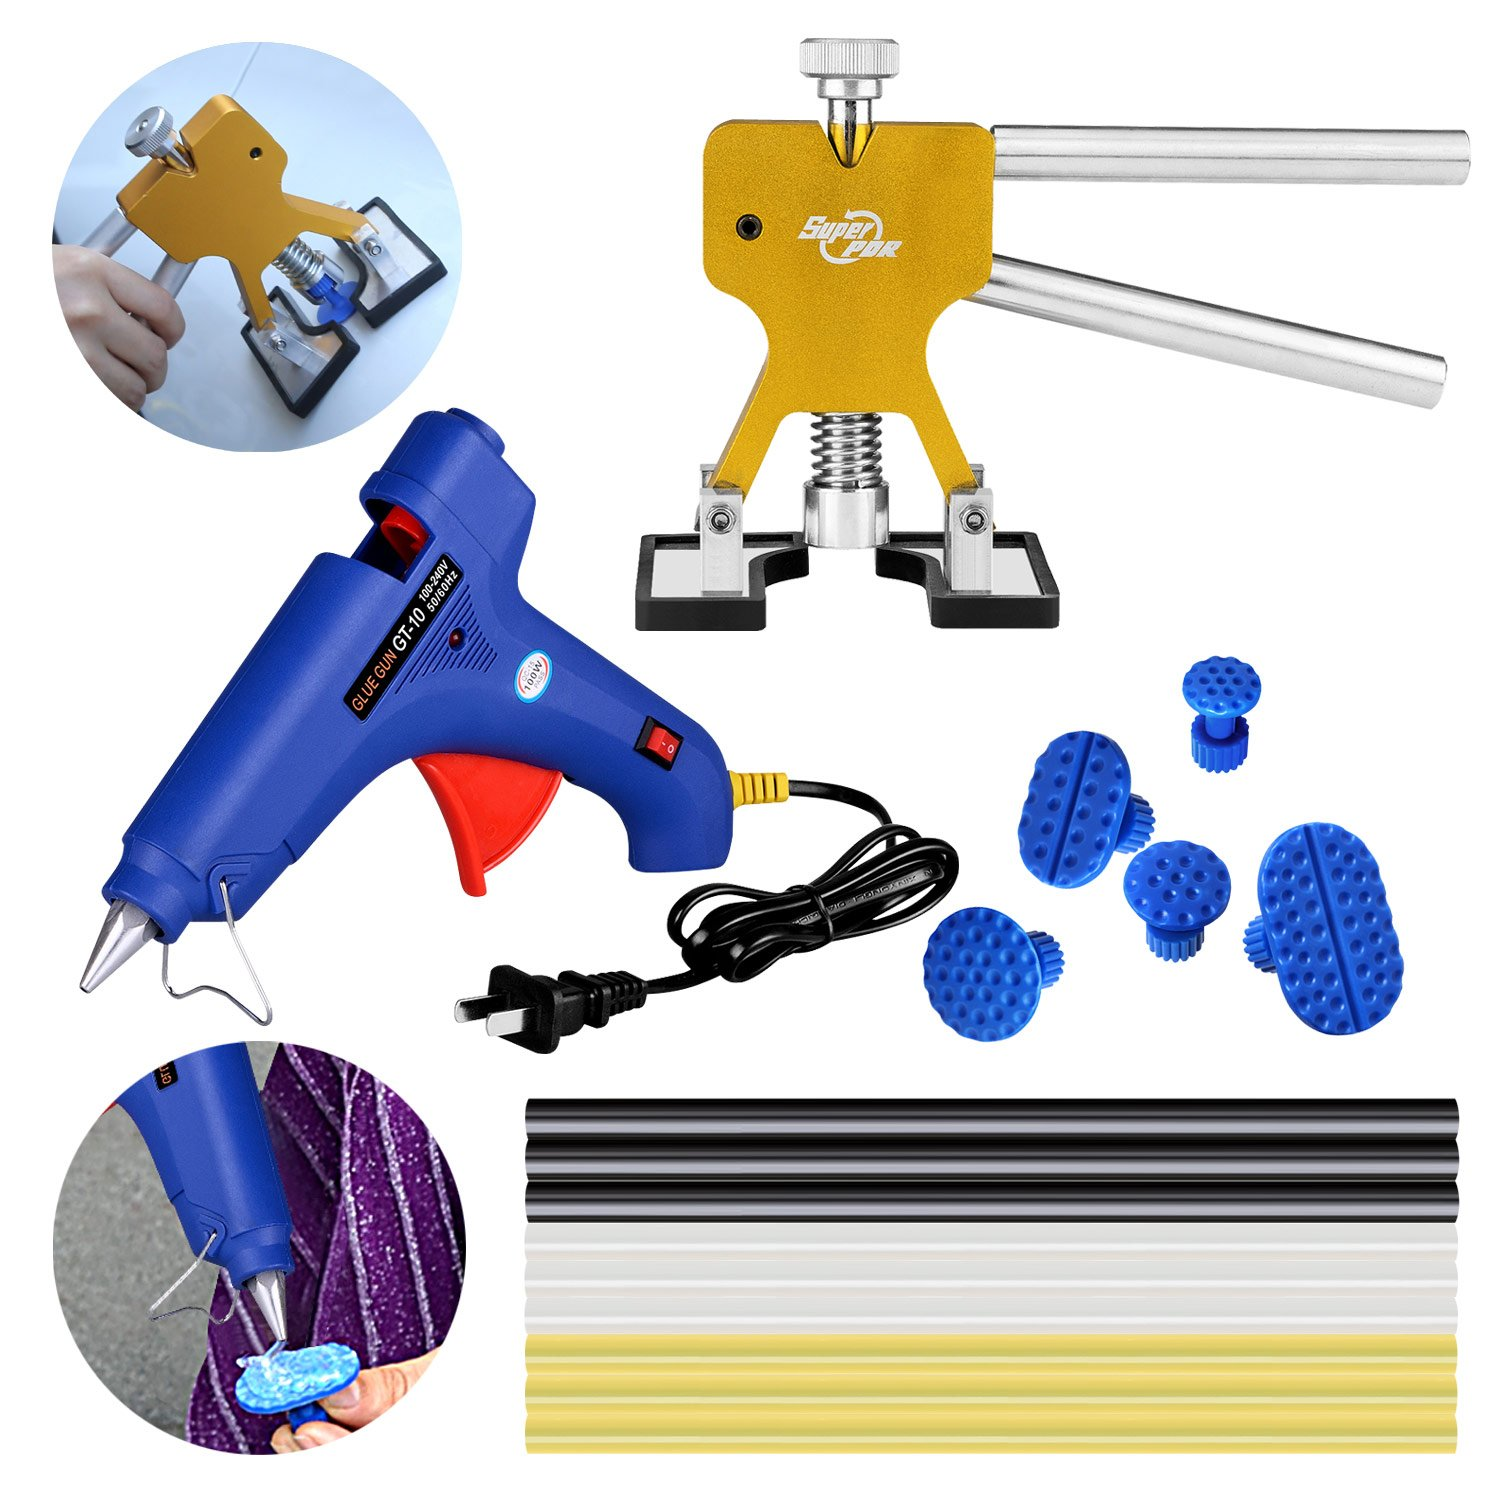 AUTOPDR 16Pcs Pop A Dent PDR Auto Car Body Paintless Dent Repair Removal Remover PDR Tool Kits